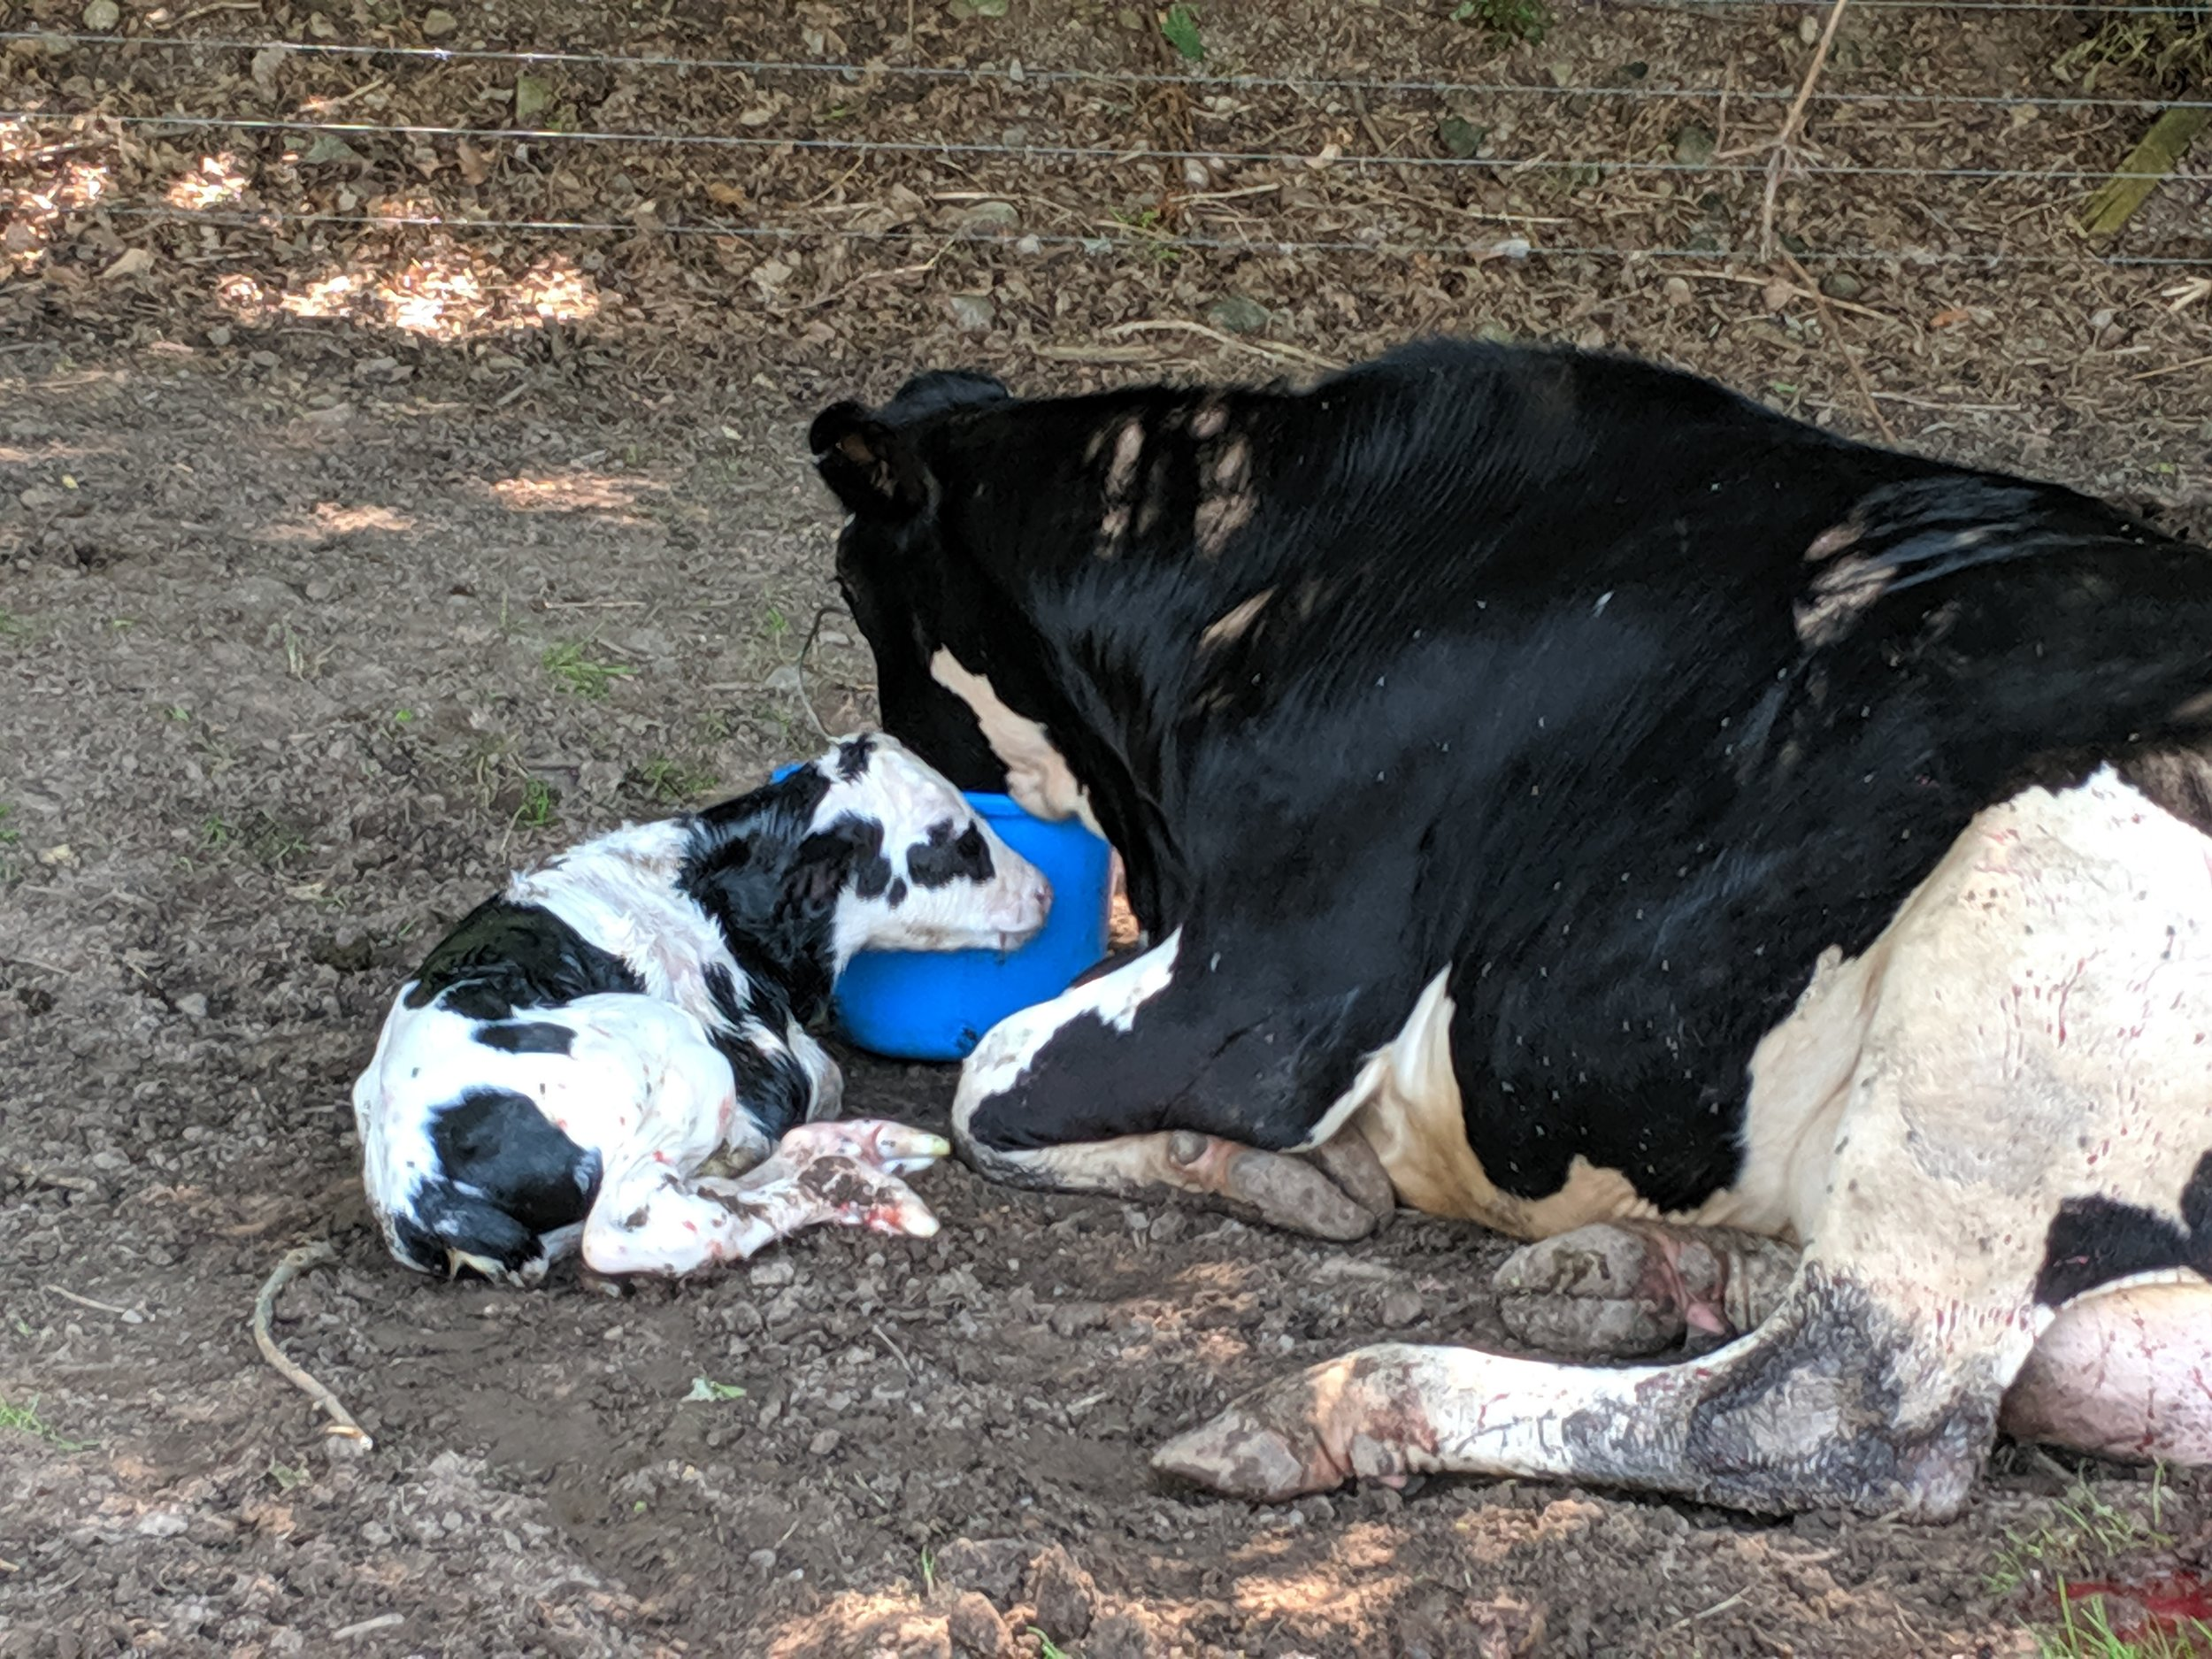 Once the calf was born and mama took a break from cleaning her up, she is given a few buckets of water that is filled with vitamins for her after the birth.